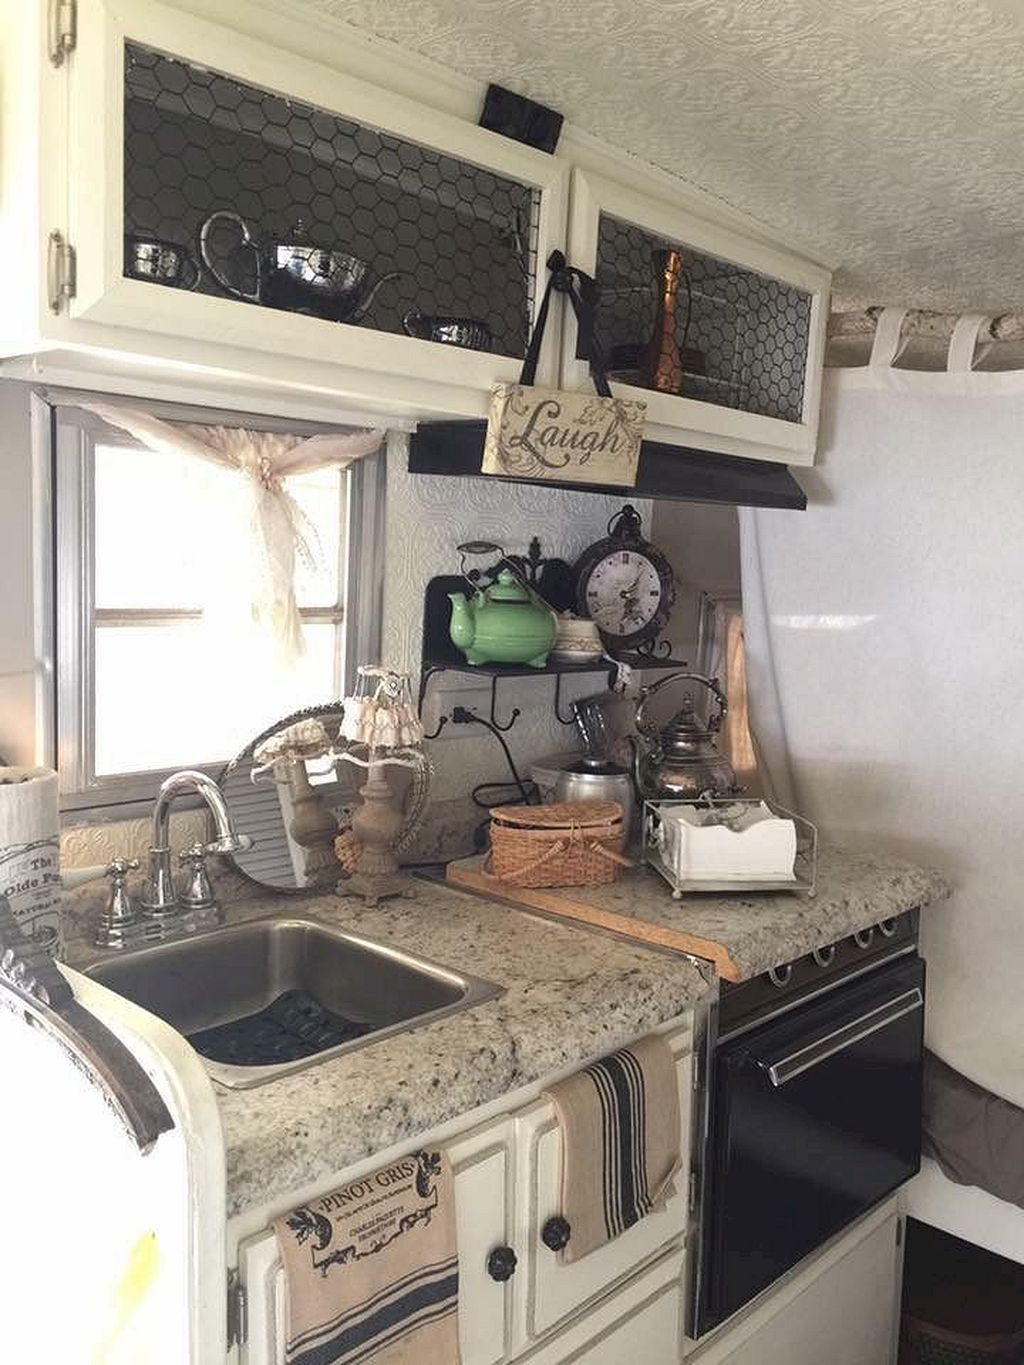 Decoration Interieur D'un Camping Car Rv Hacks Remodel And Renovation Ideas To Make You A Happy Camper